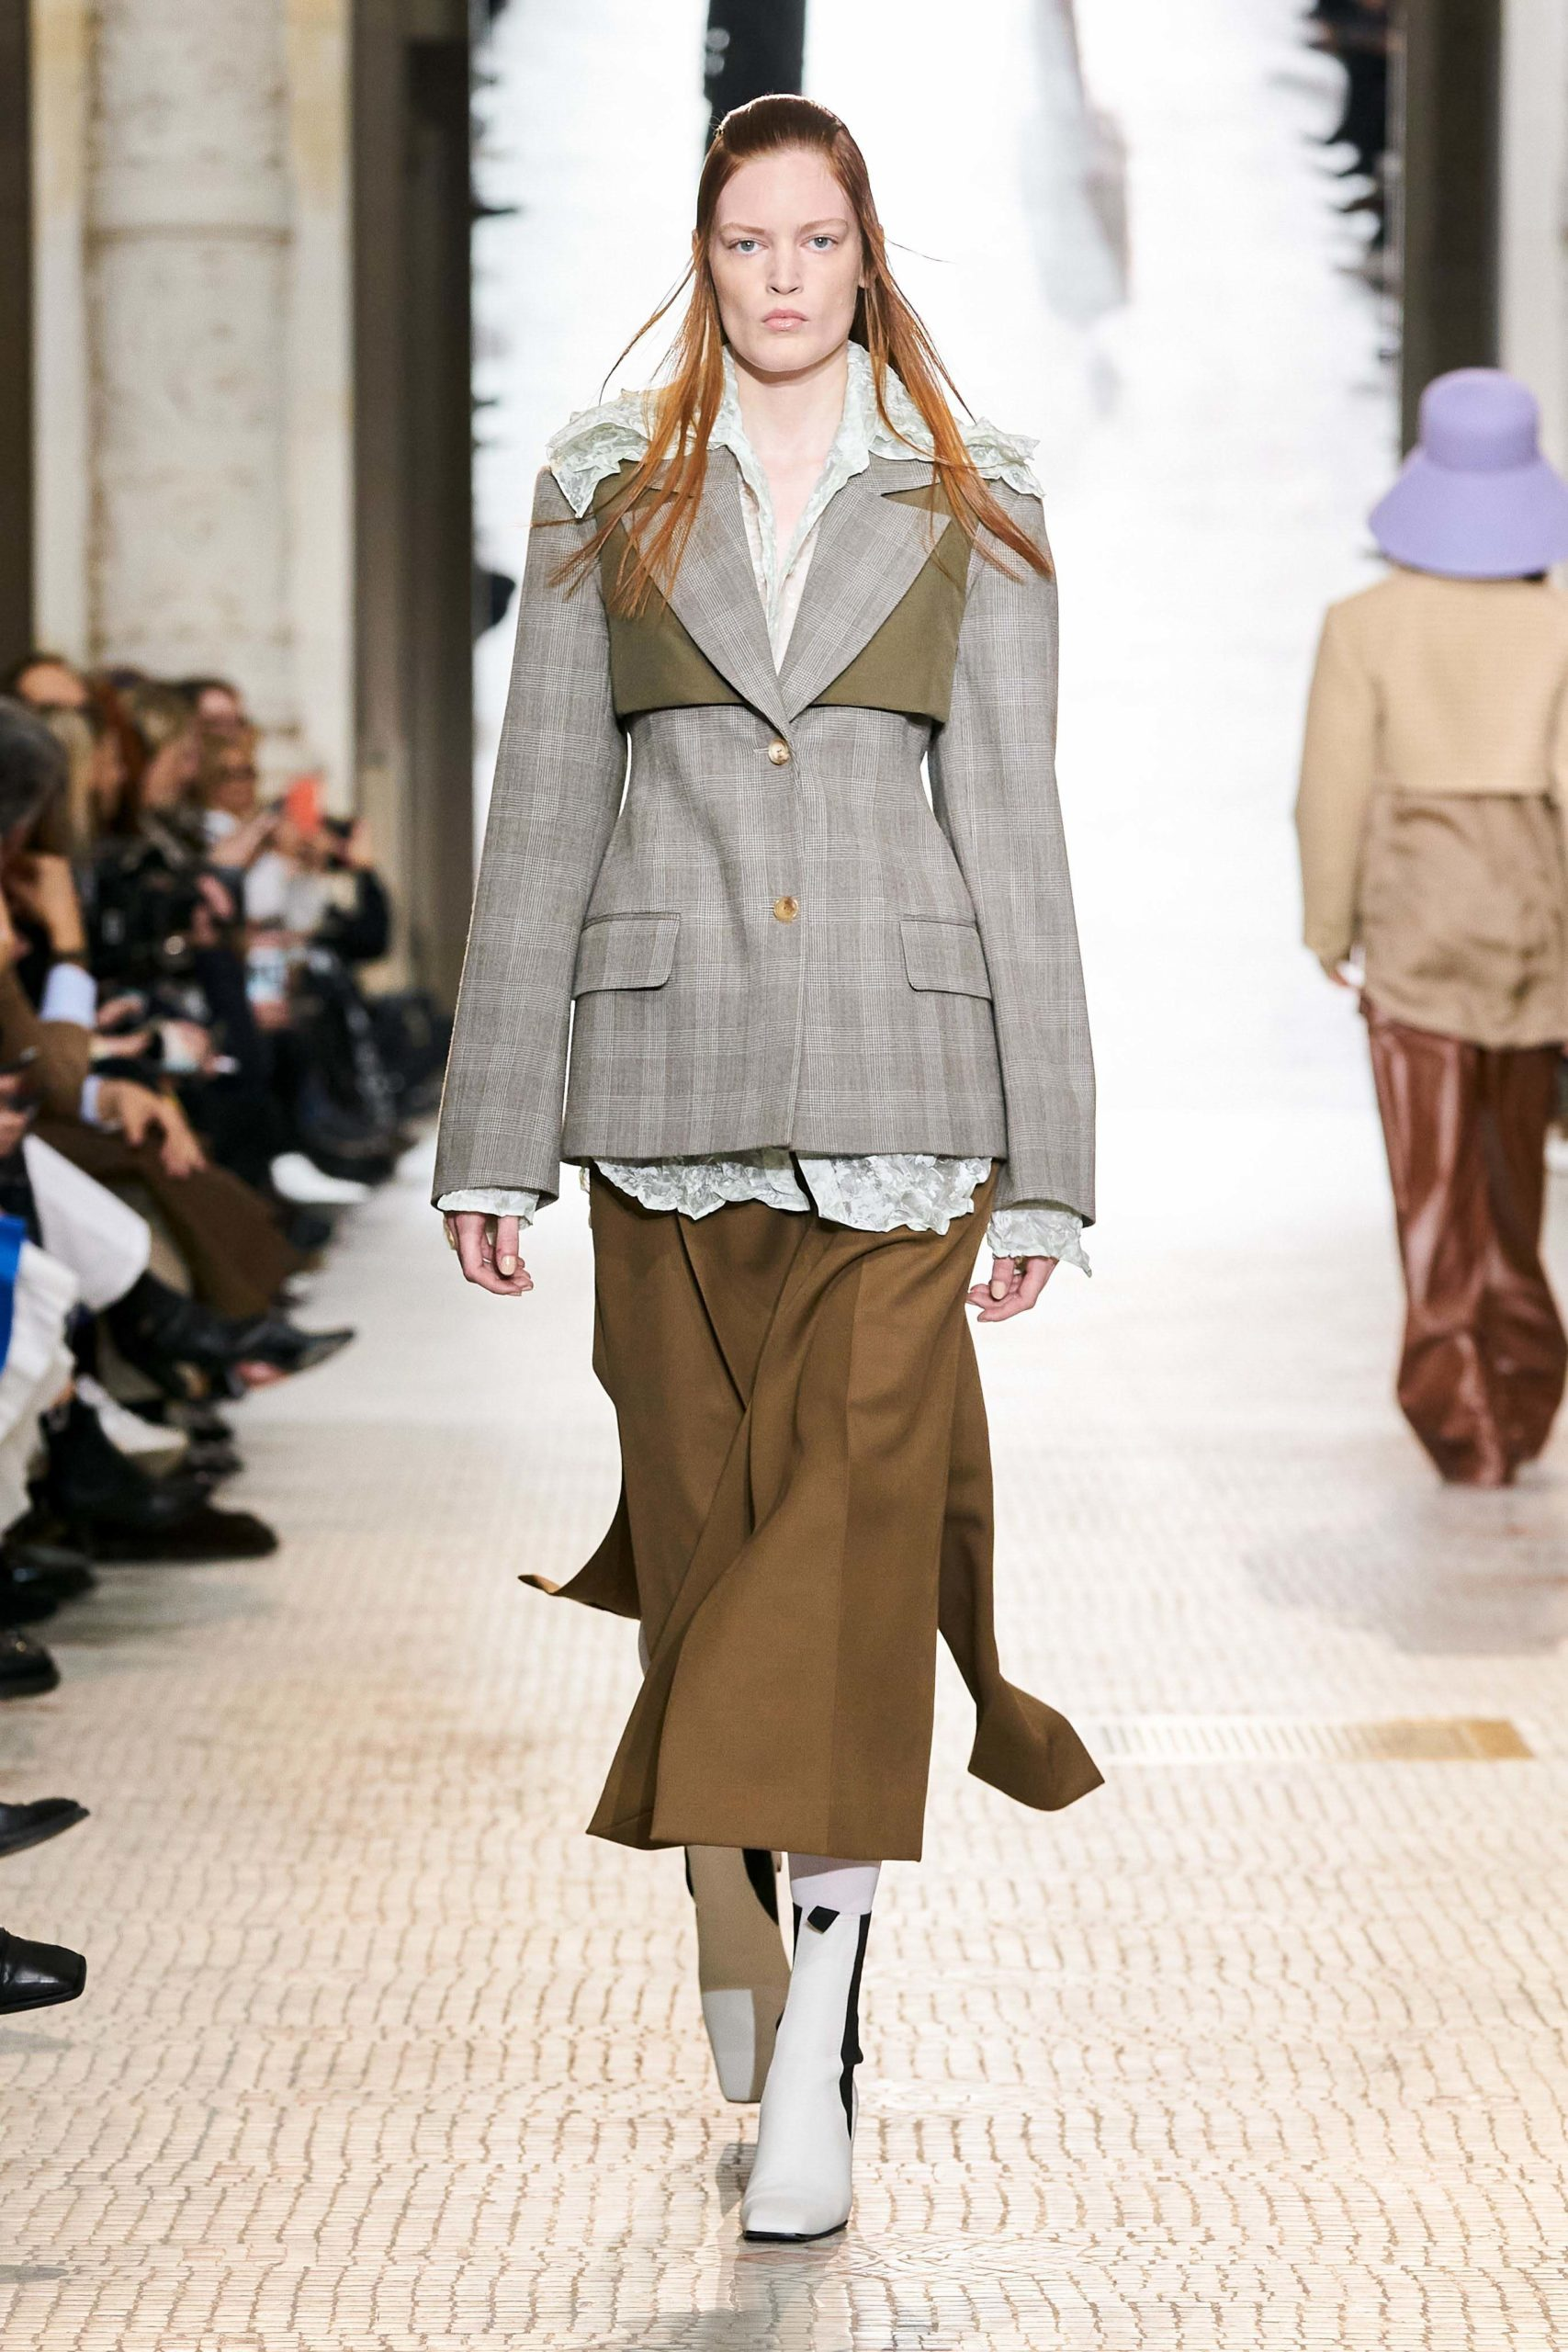 Nina Ricci Fall 2020 trends runway coverage Ready To Wear Vogue tailleur jupe skirt suit